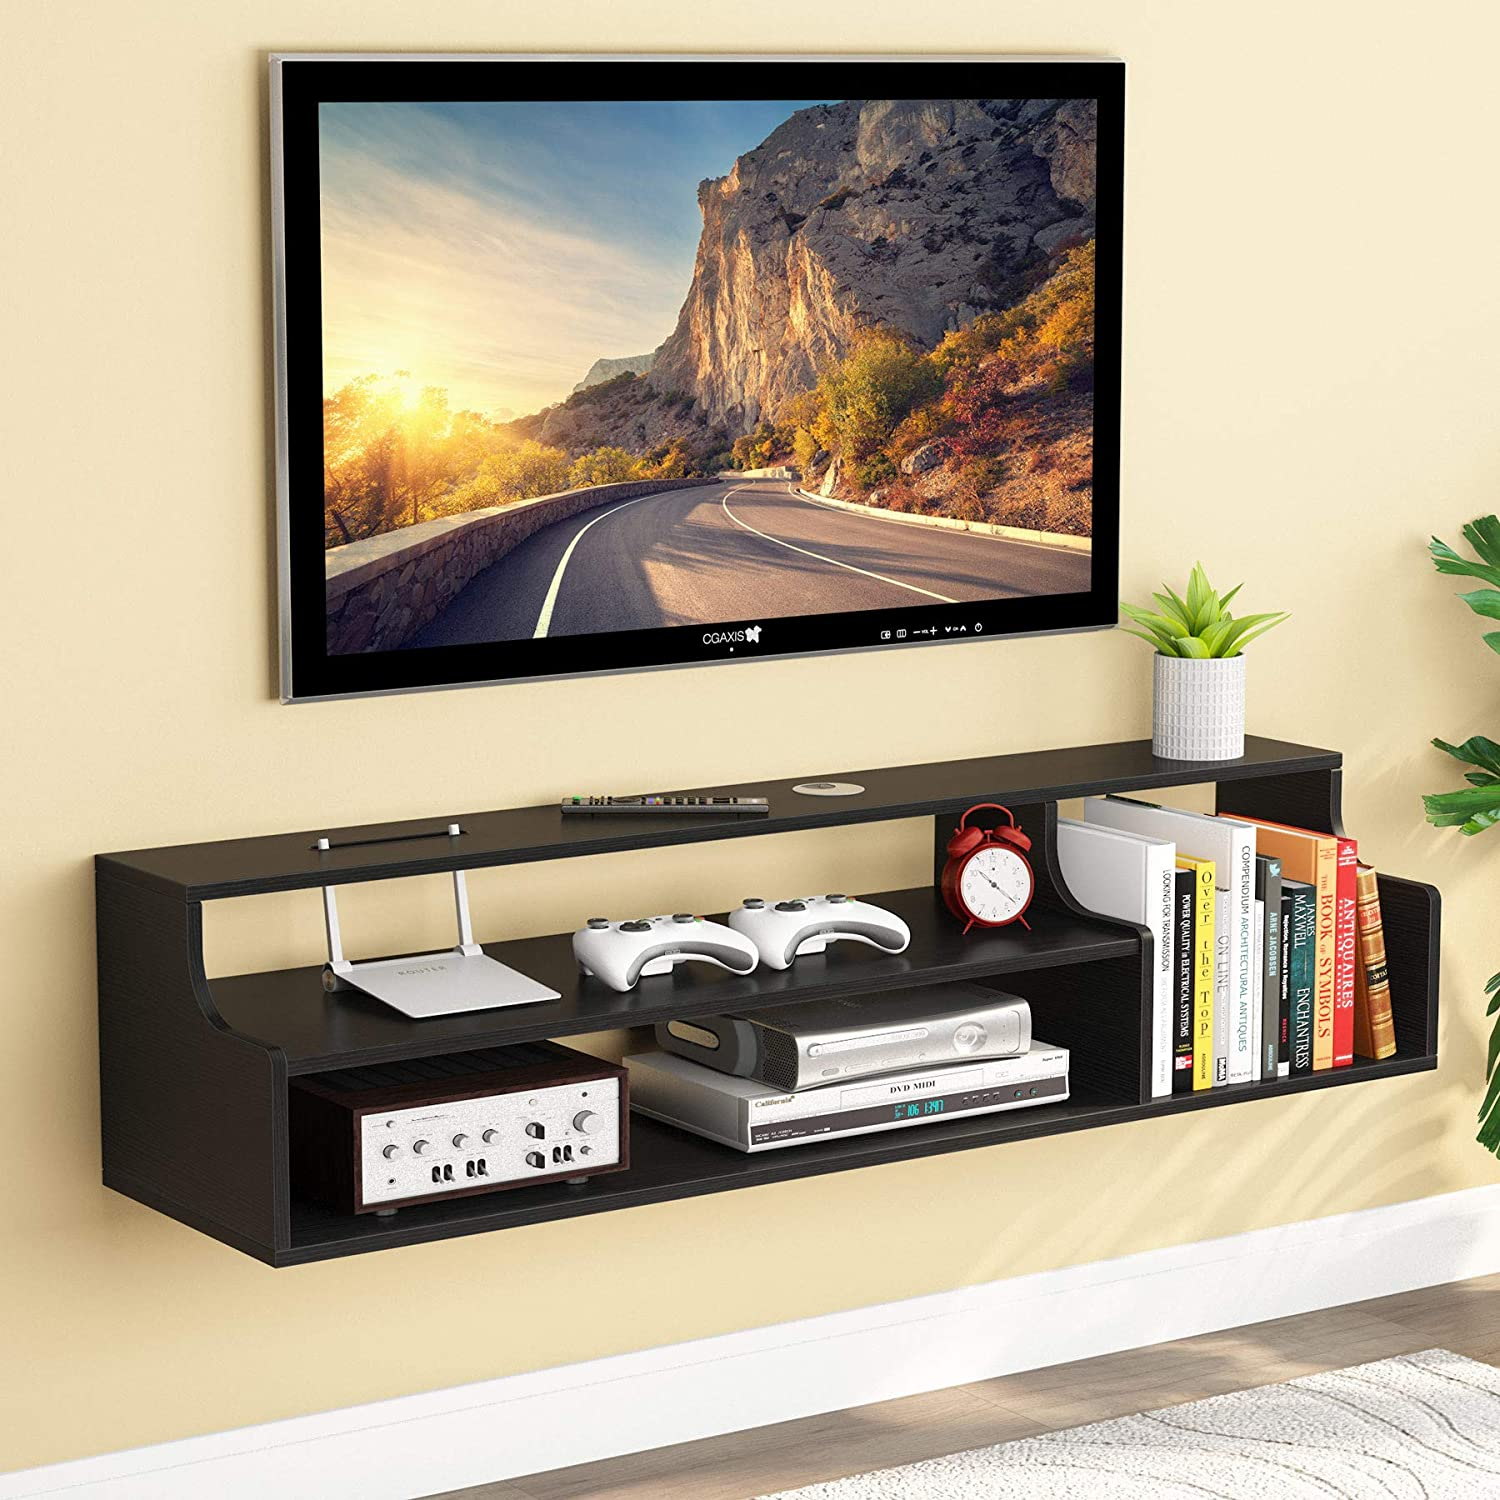 Our shop most popular Tribesigns 3 Tier Modern Floating TV Wall Stand Mounted Be super welcome Shelf